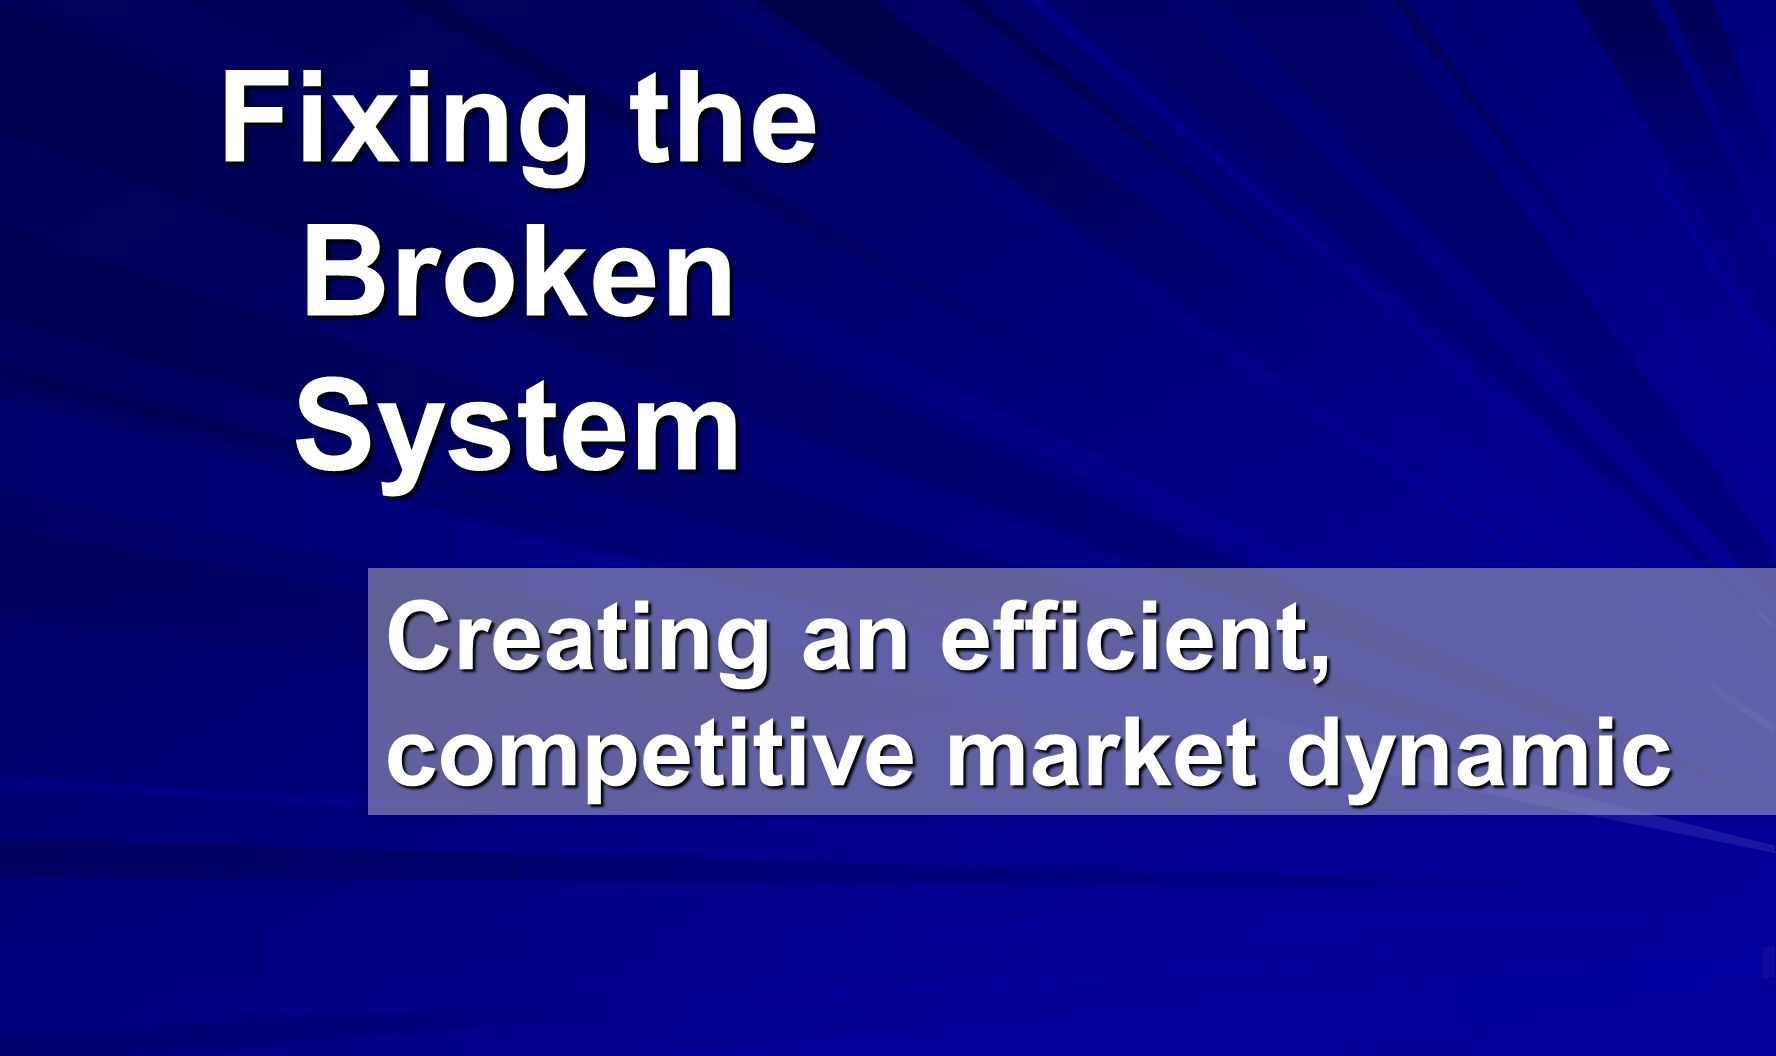 Fixing the Broken System Creating an efficient, competitive market dynamic